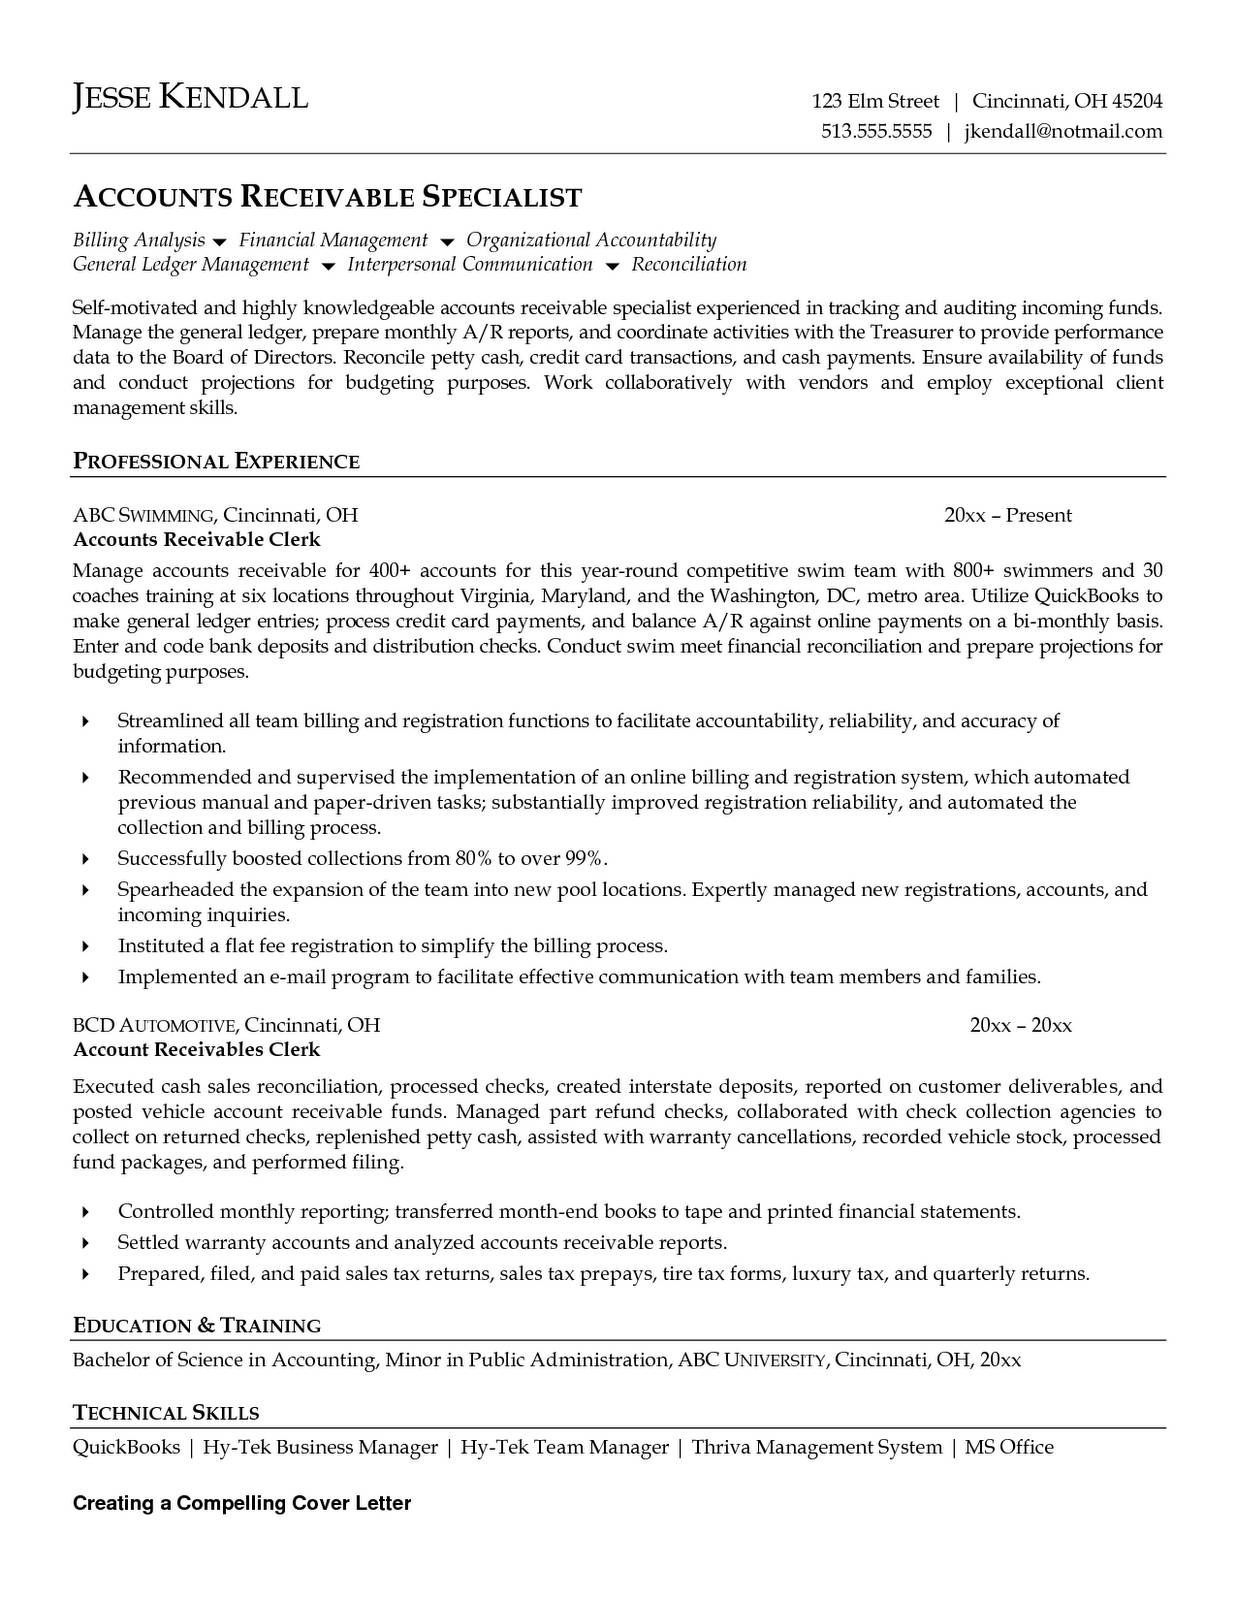 Resume Examples Accounts Payable Job Application Cover Letter